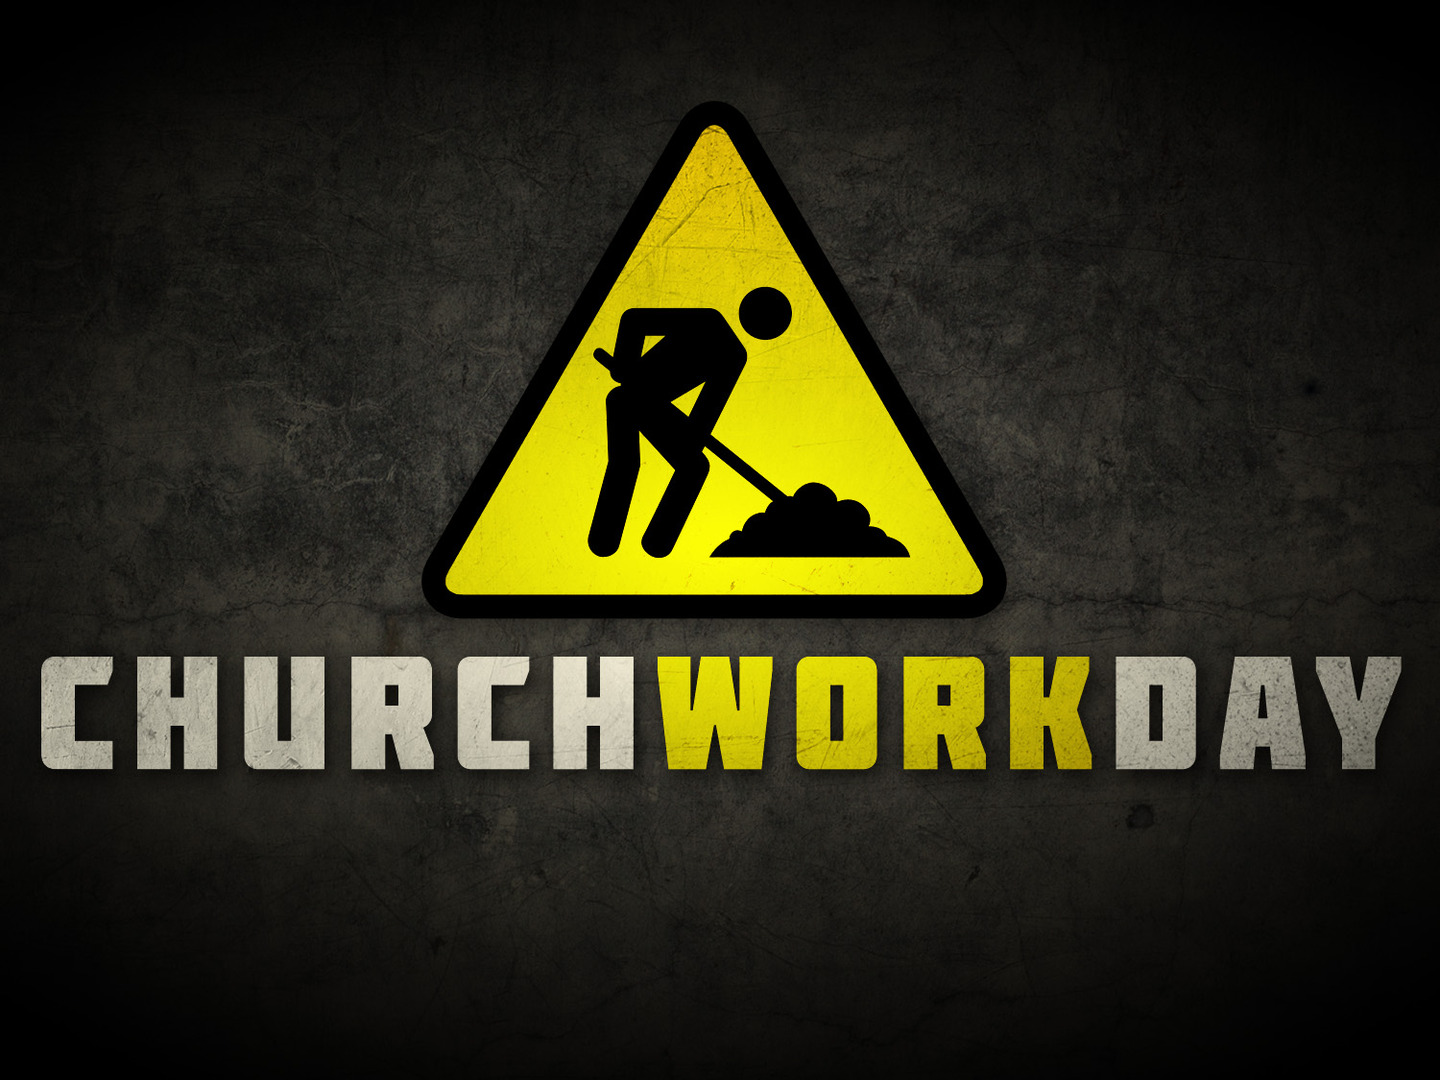 church_work_day-title-2-Standard 4x3.jpg